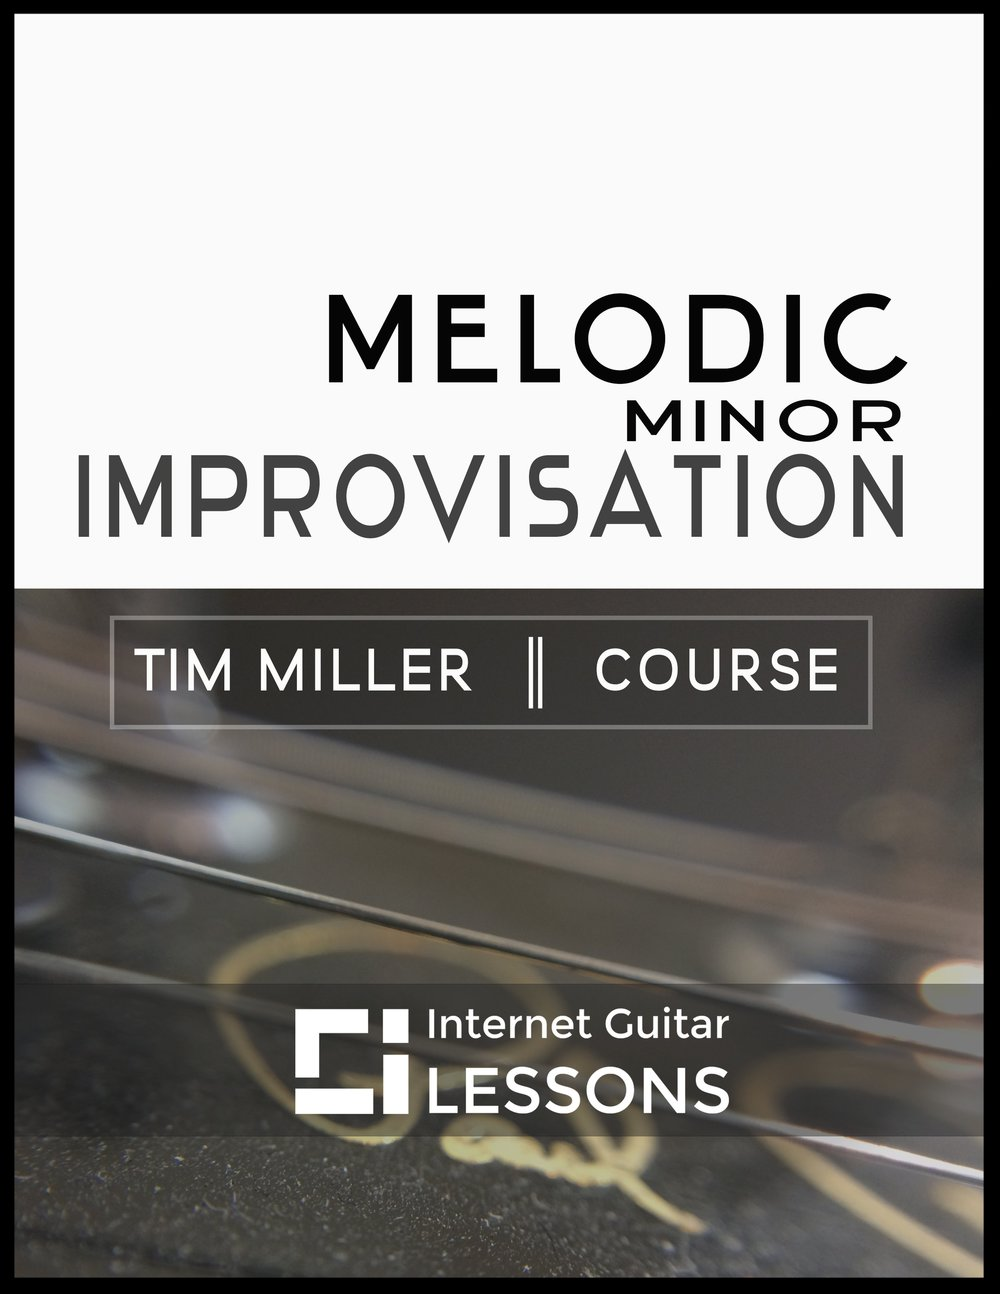 Melodic Minor Improvisation 1.17 flat.jpg